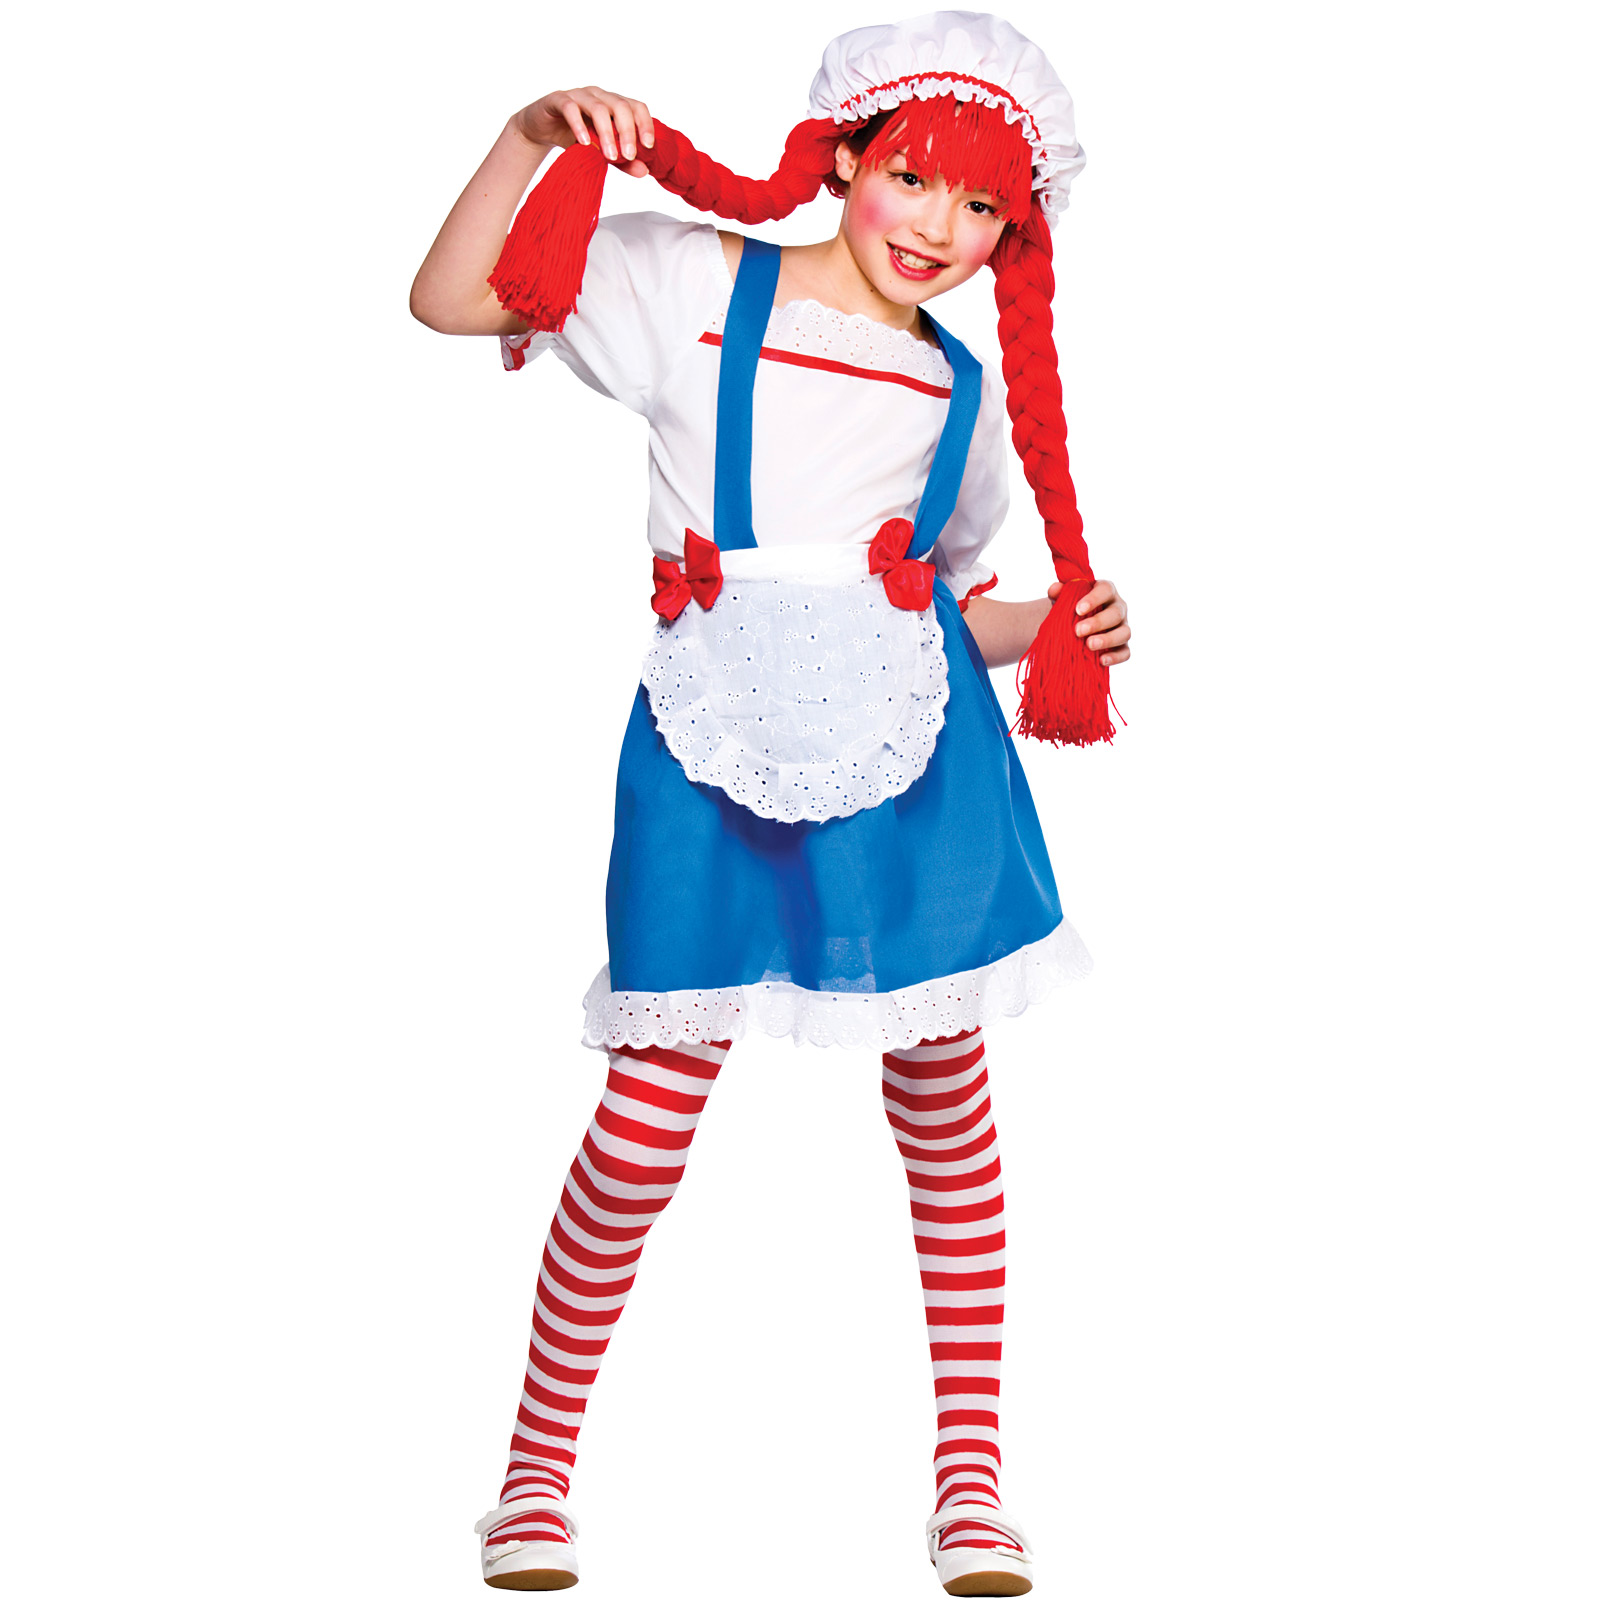 Child-Girls-Little-Rag-Doll-Costume-Fancy-Dress-Up-Role-Play-Party-Halloween-New